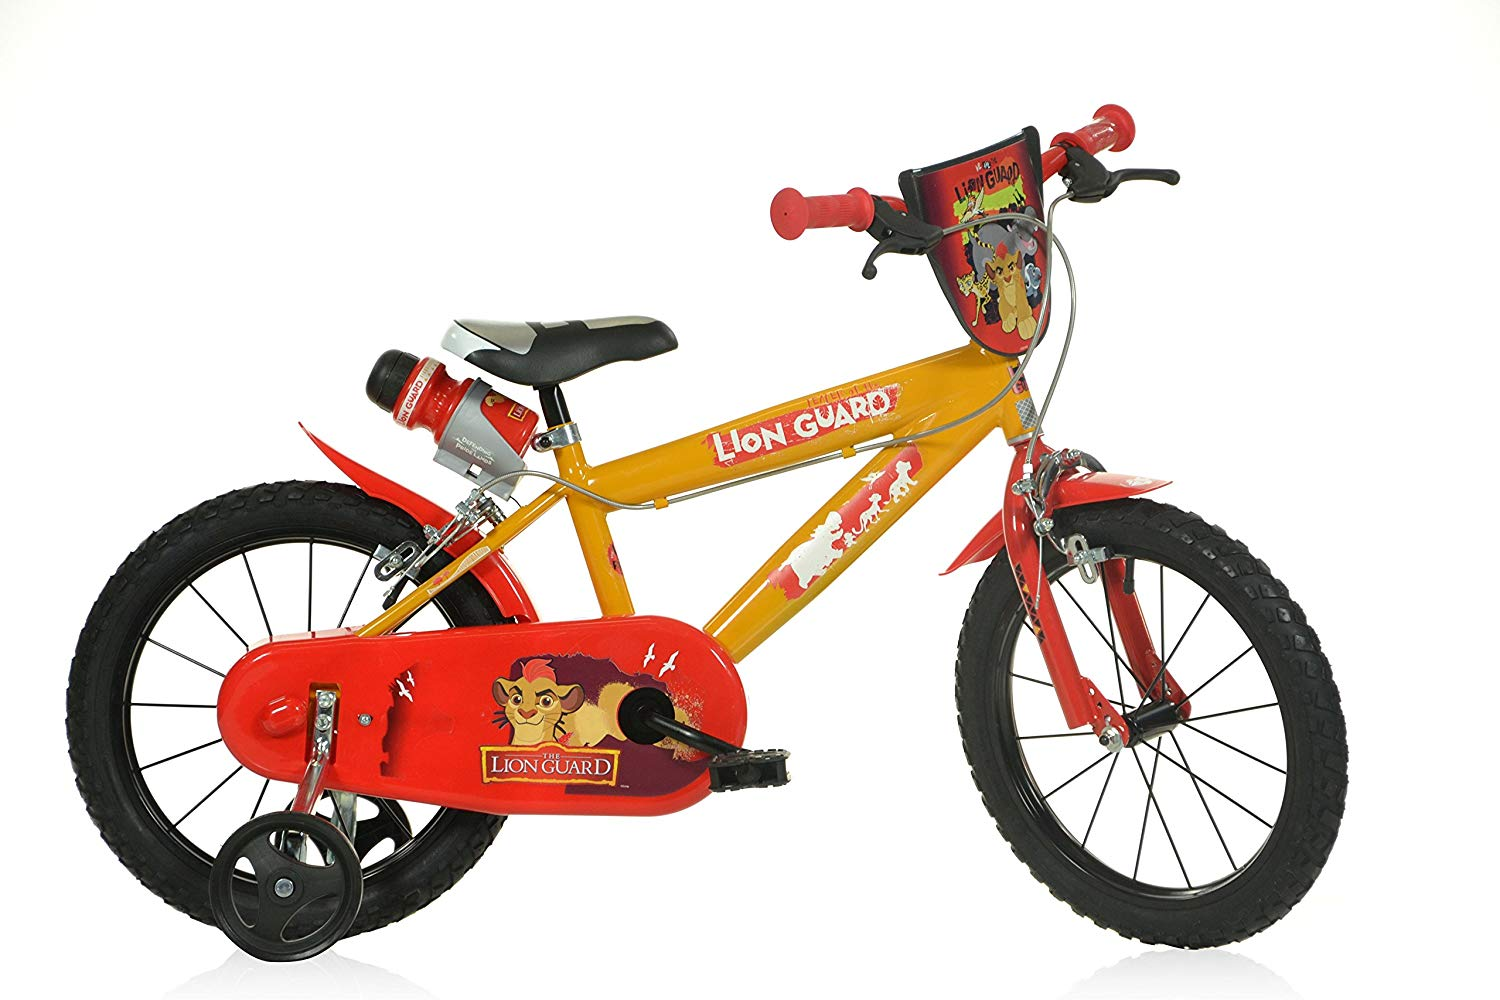 Lot 168 - 1 x The Lion Guard 16inch Balance Bike Red - DINO Bikes | 8006817900948 | RRP £ 99.99 DAMAGED PACKAG